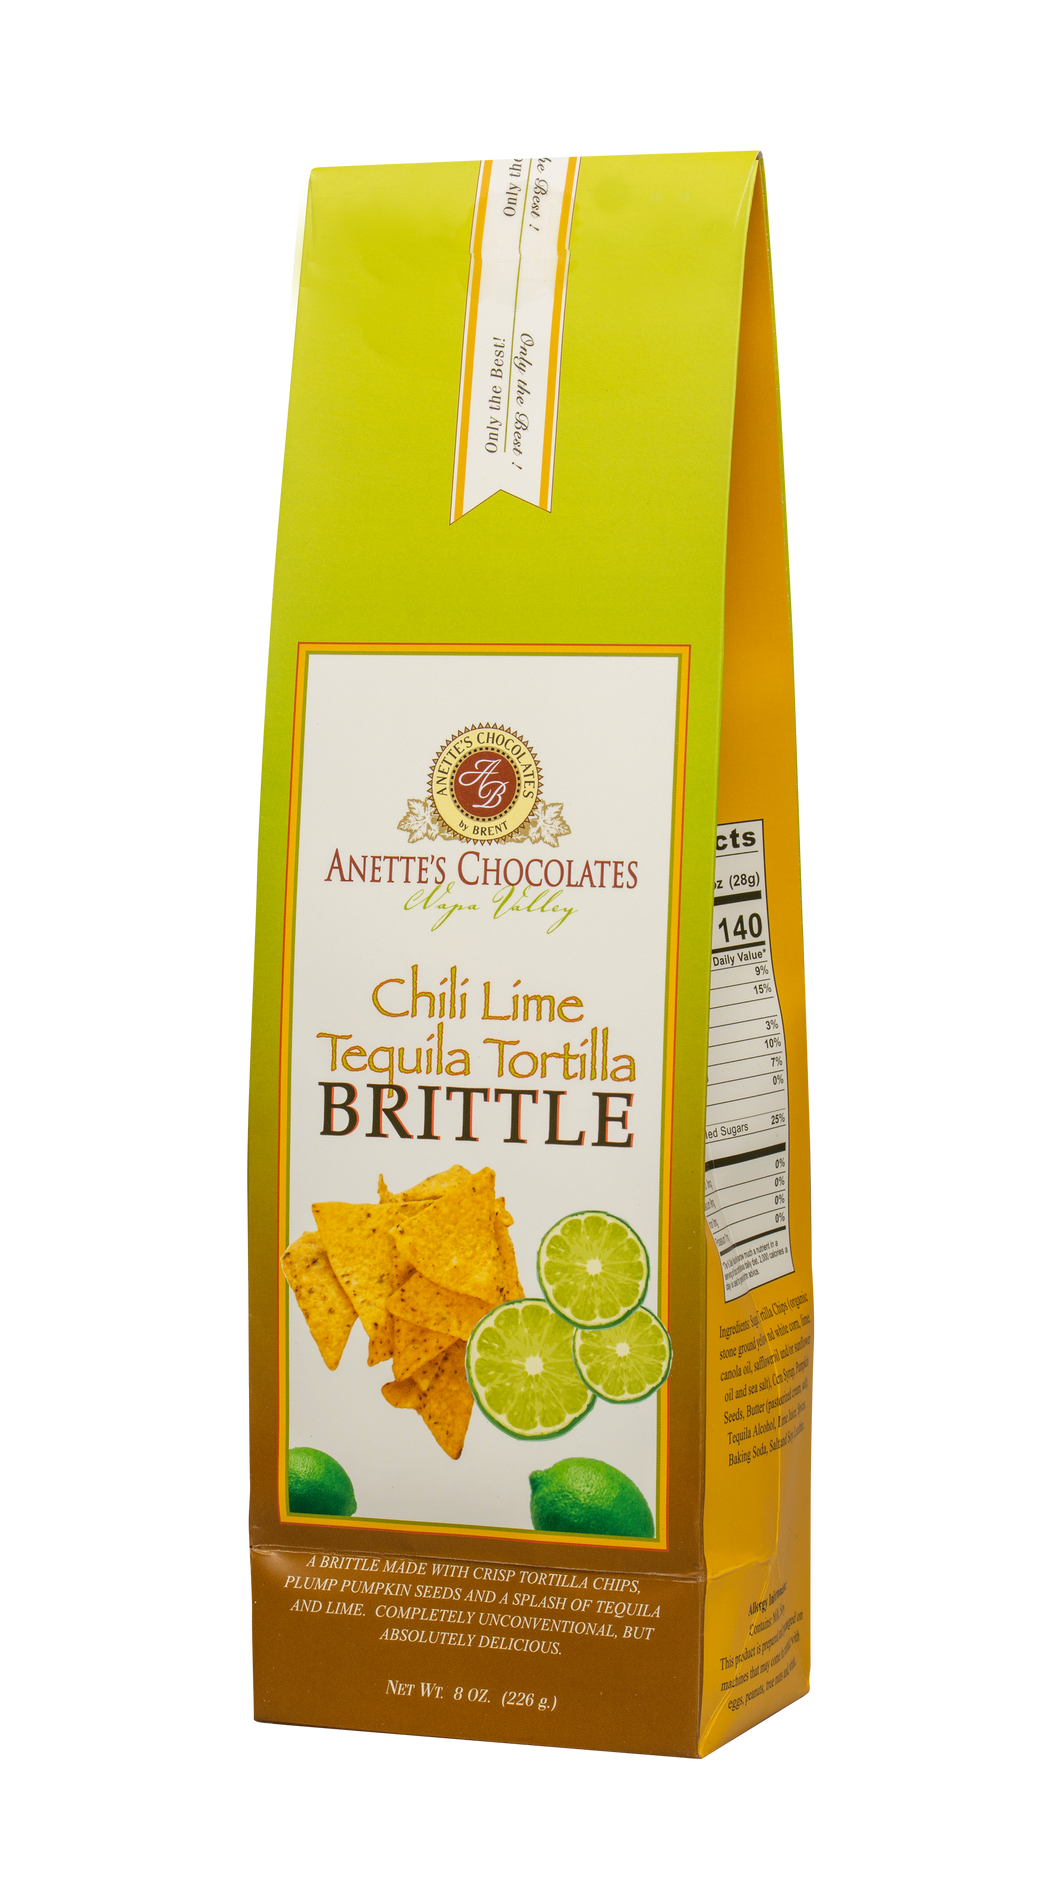 Brittle- Chili Lime Tequila Tortilla Brittle